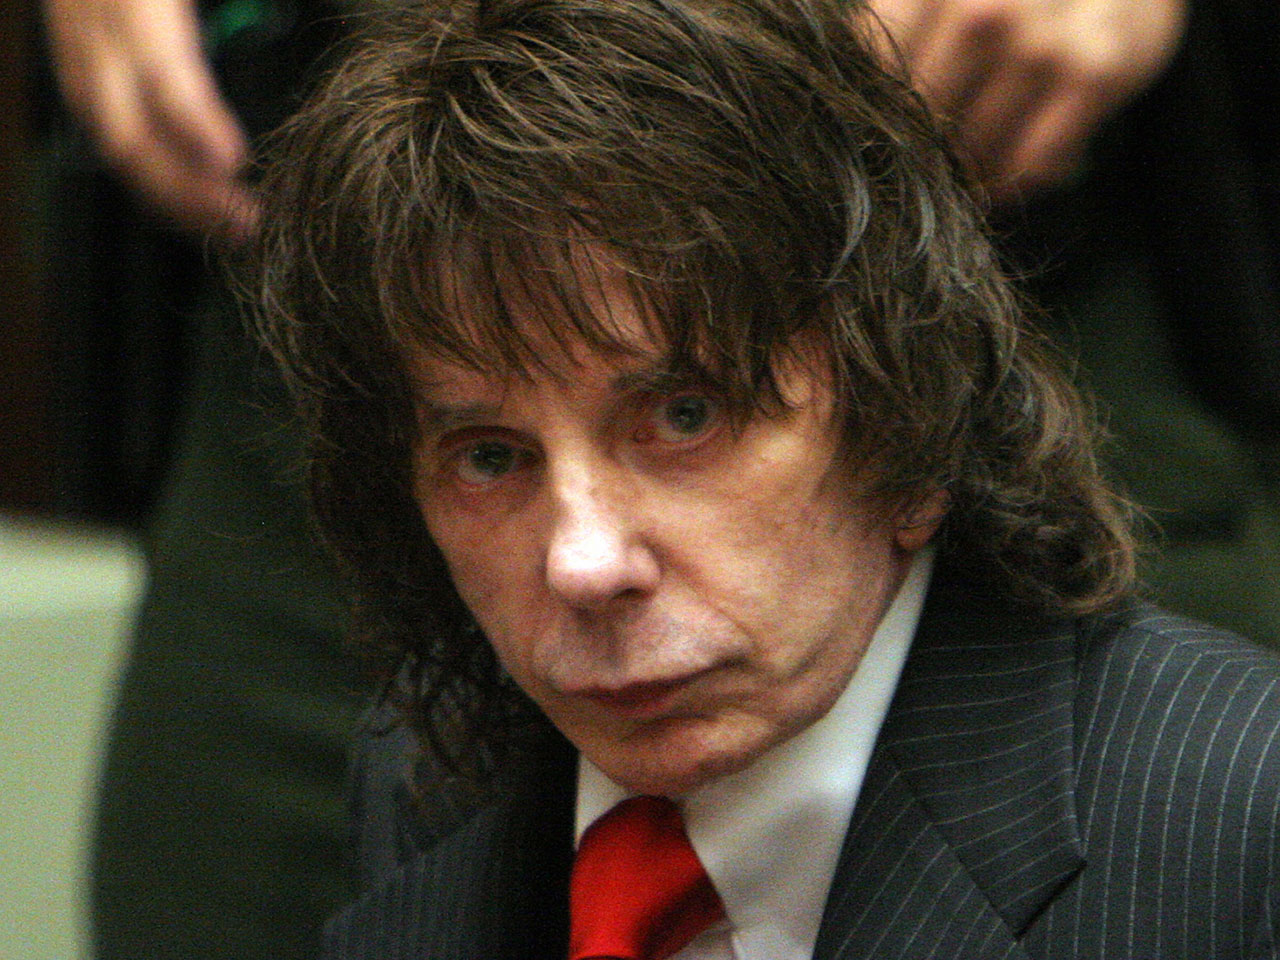 Phil Spector: New photos show age, decline of pop music ...